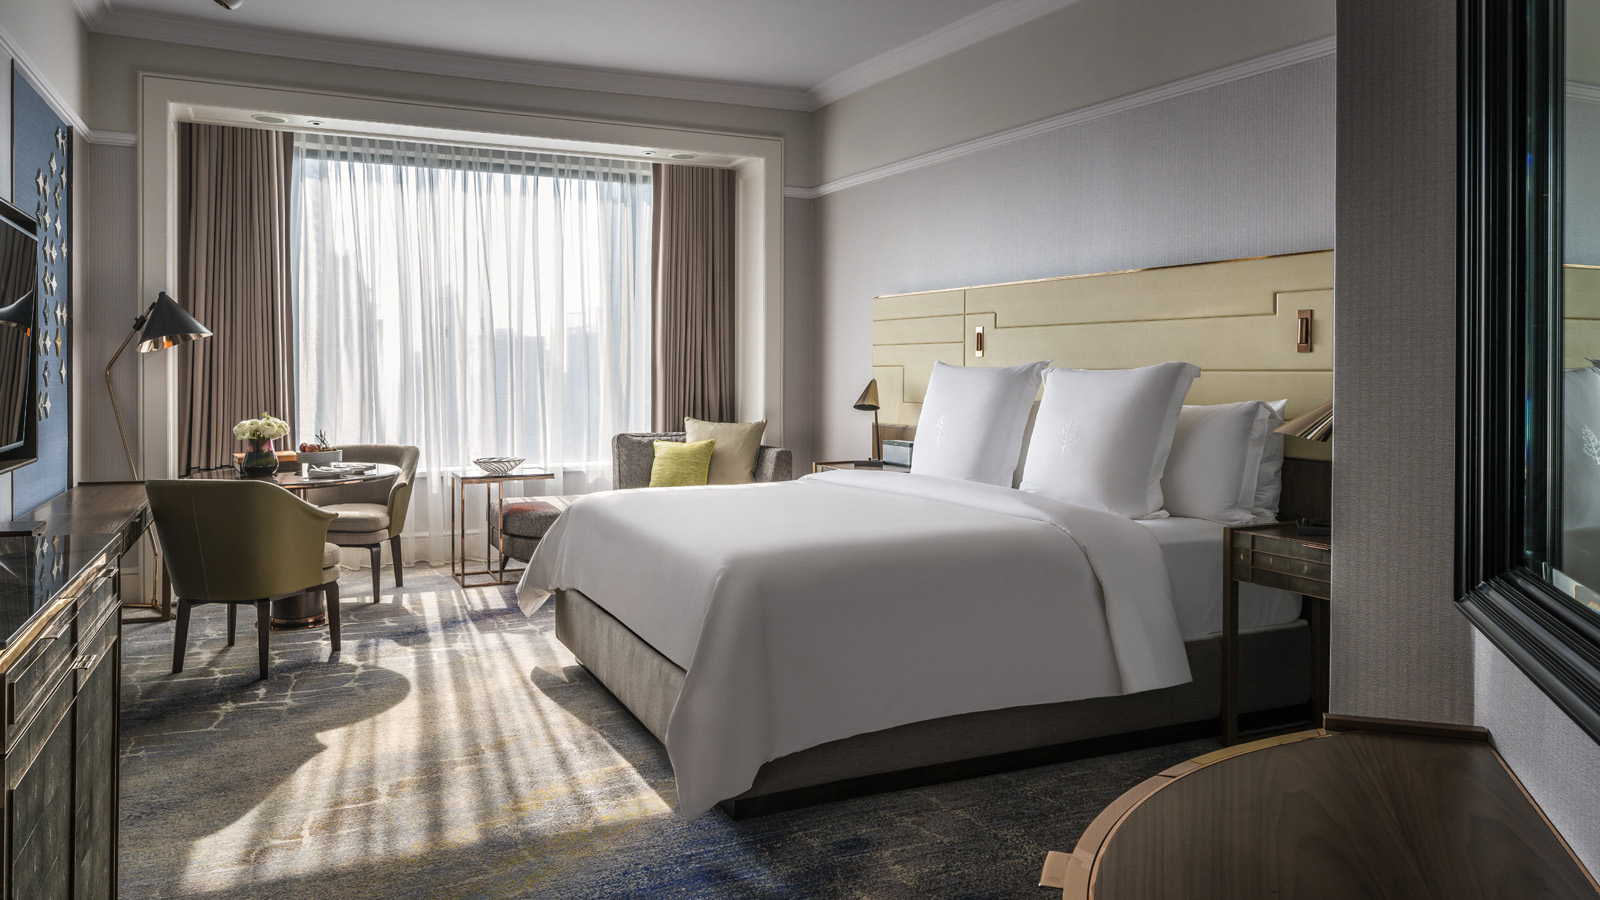 Check The Room Rate At Four Seasons Hotel Singapore